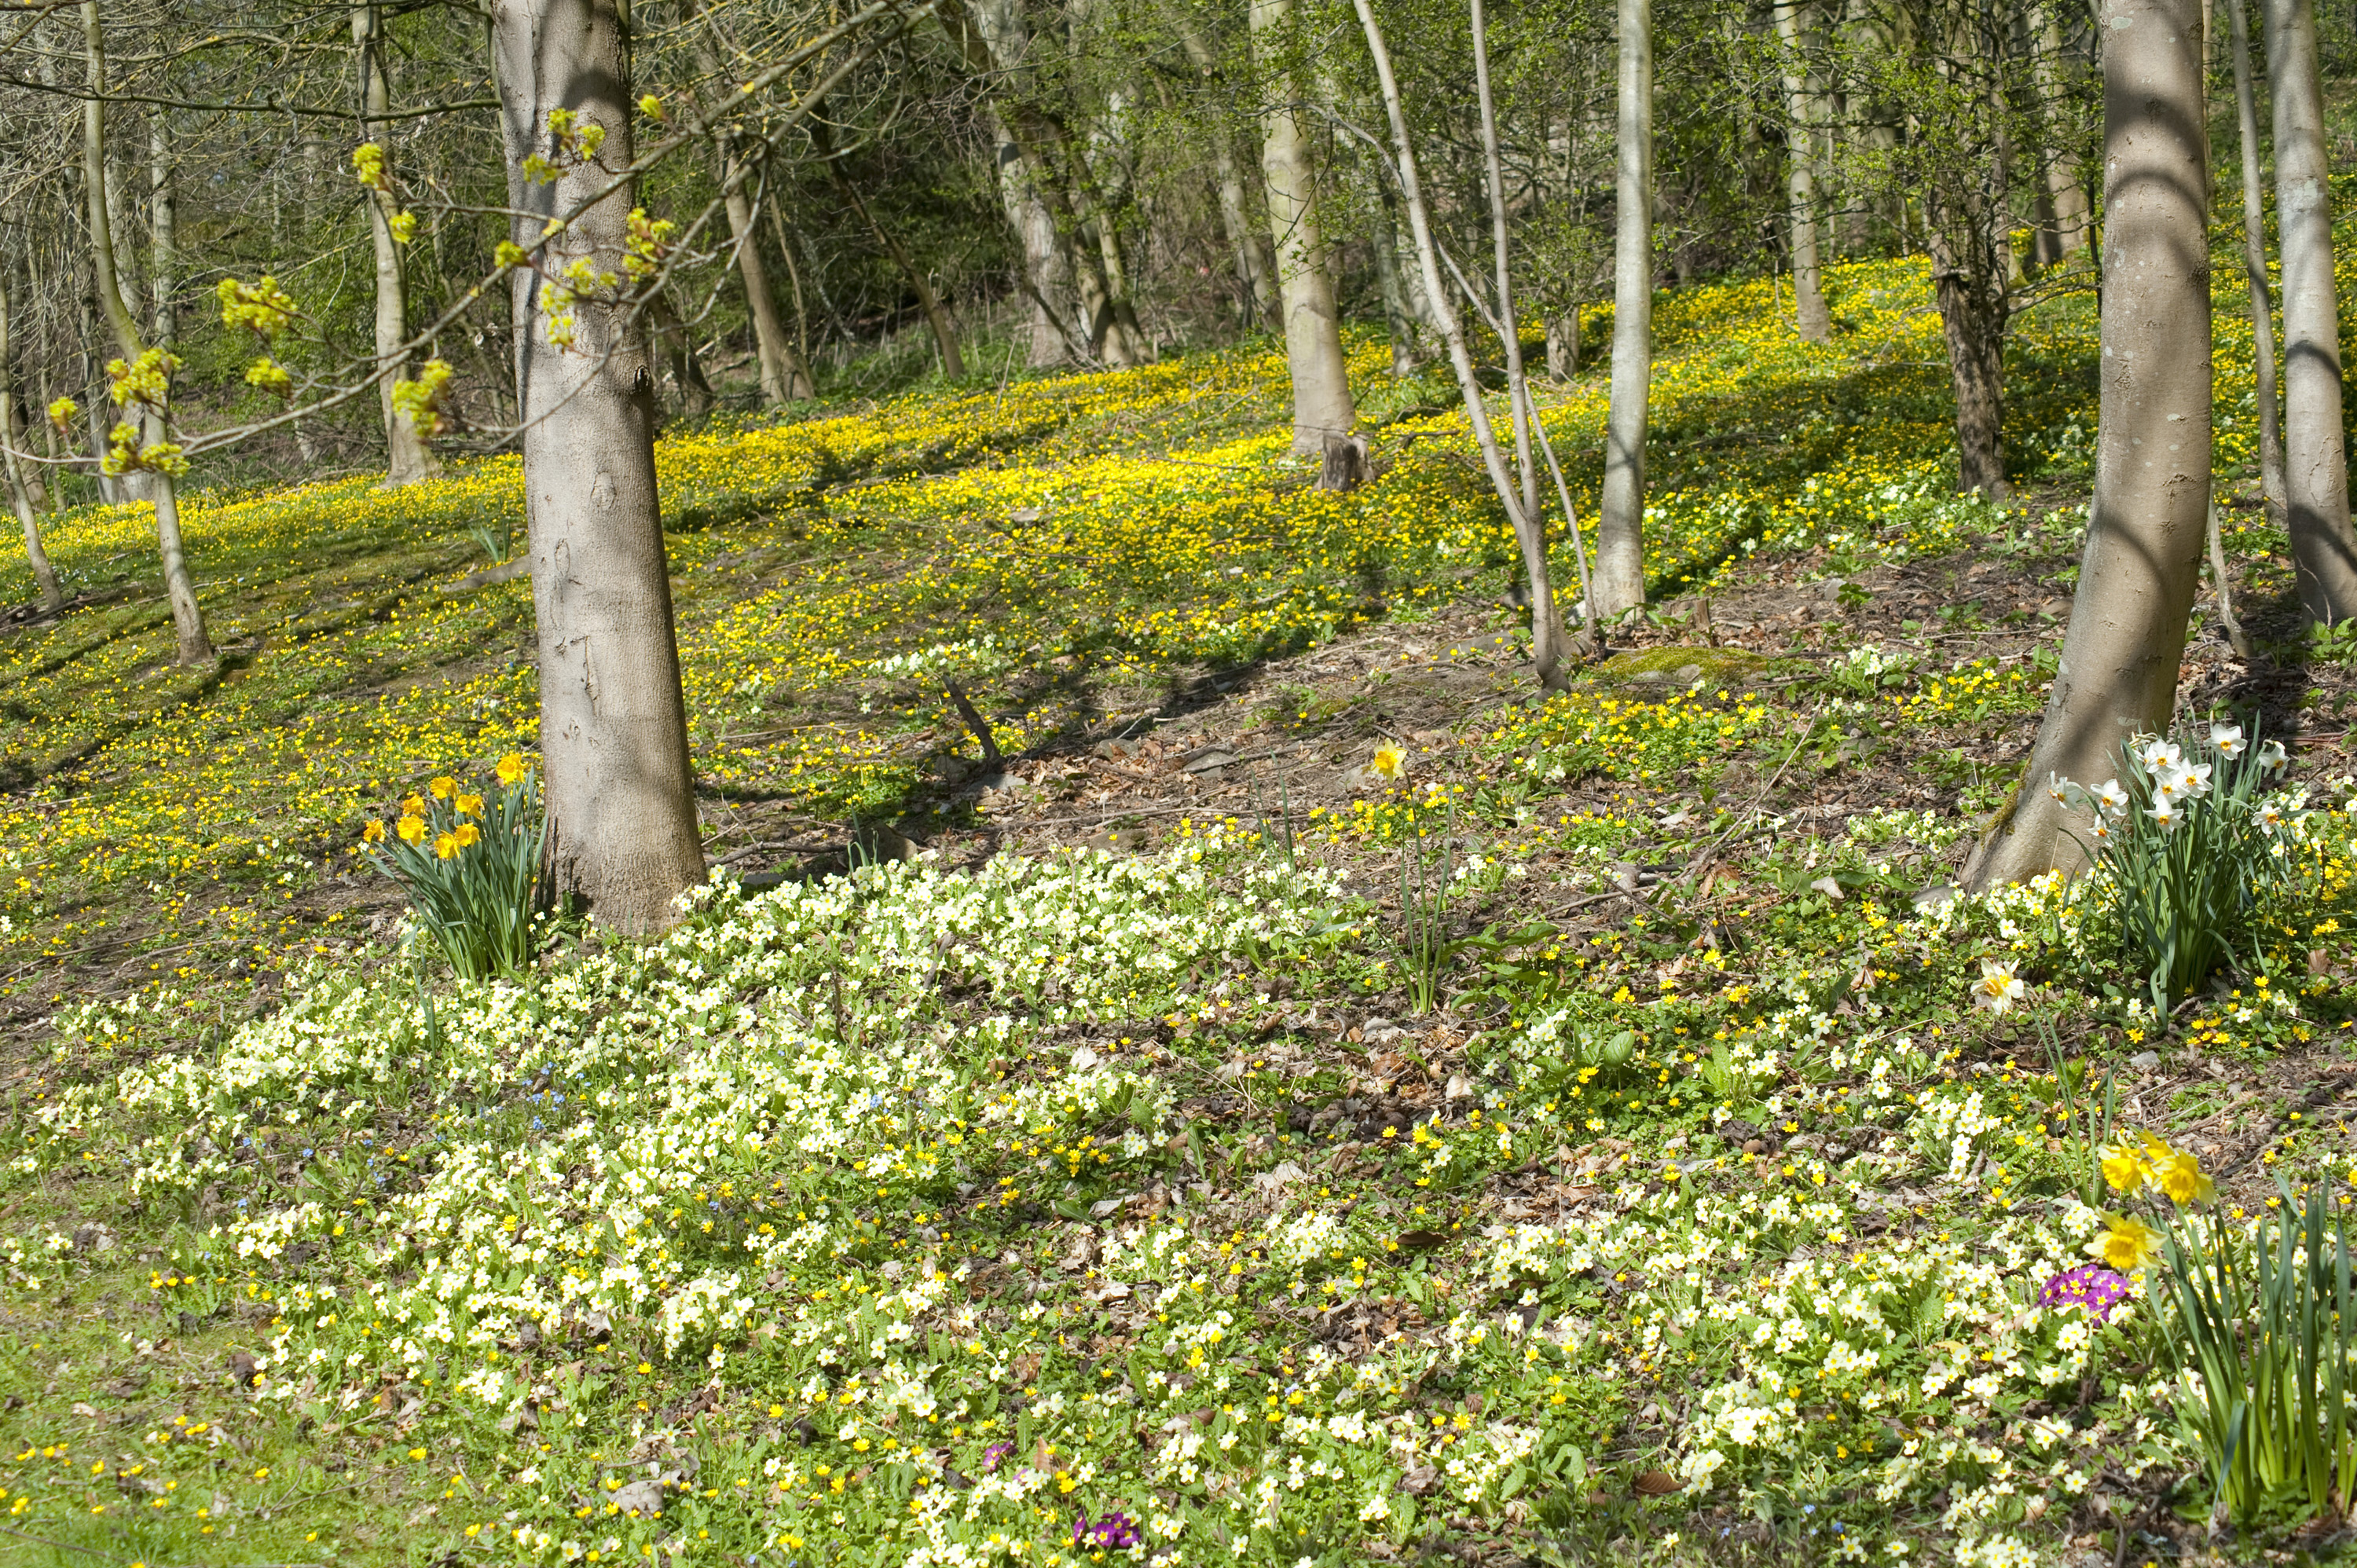 floral_carpet.jpg - Carpet of pale yellow primroses flowering under the trees in open woodland